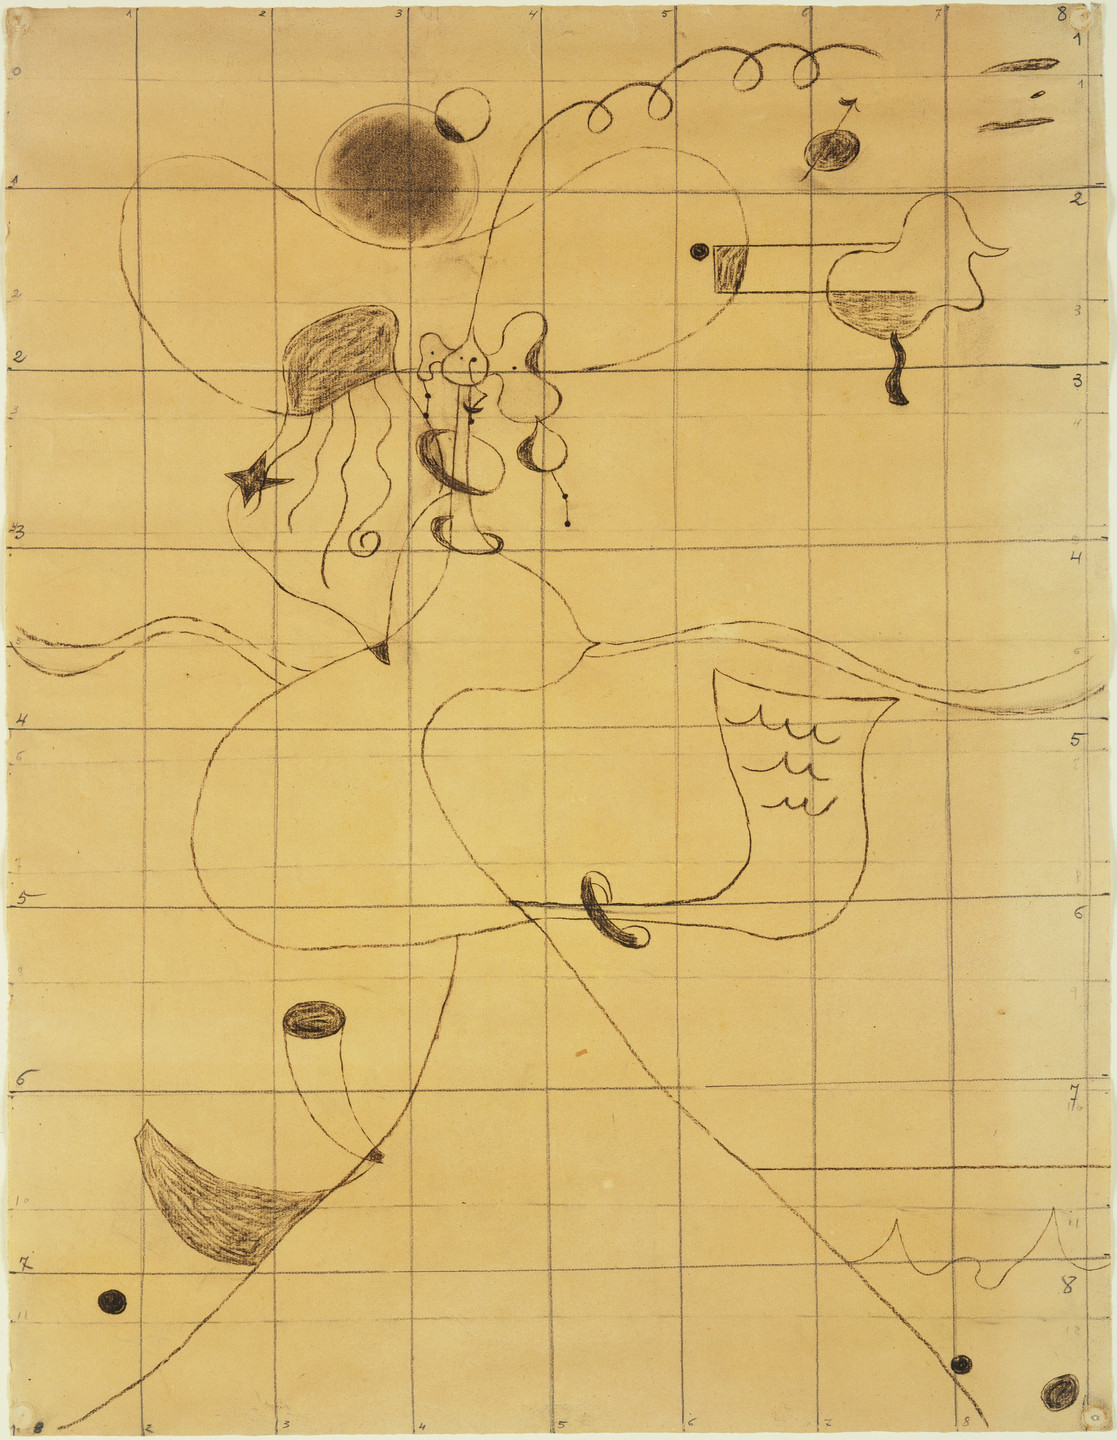 Joan Miró. Final study for Portrait of Mistress Mills in 1750. 1929